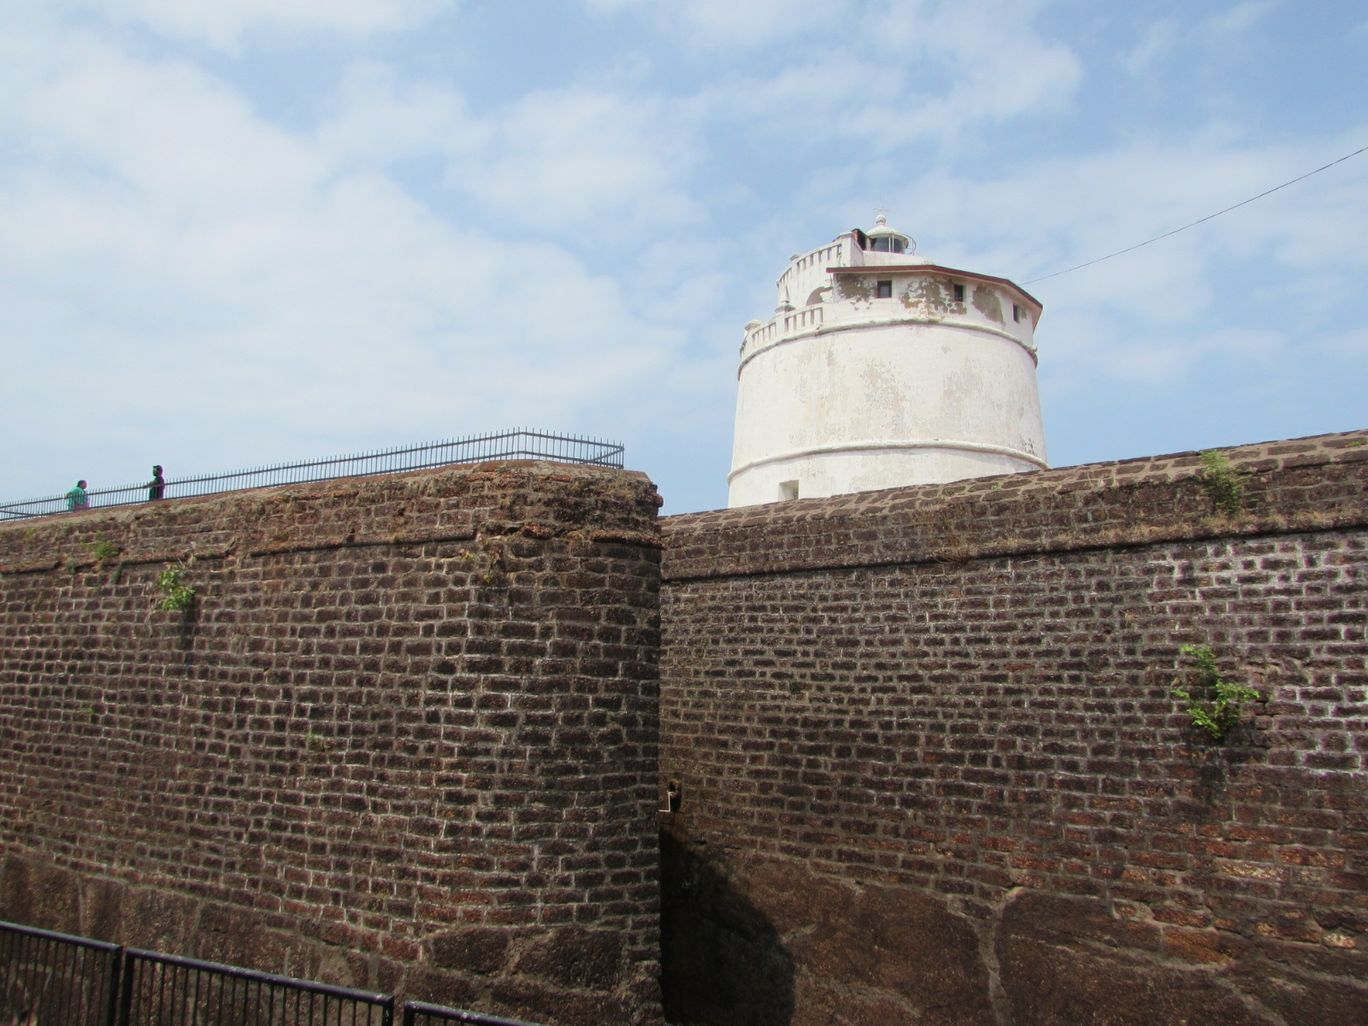 Photo of Aguada Fort By THE PLANET ROVER